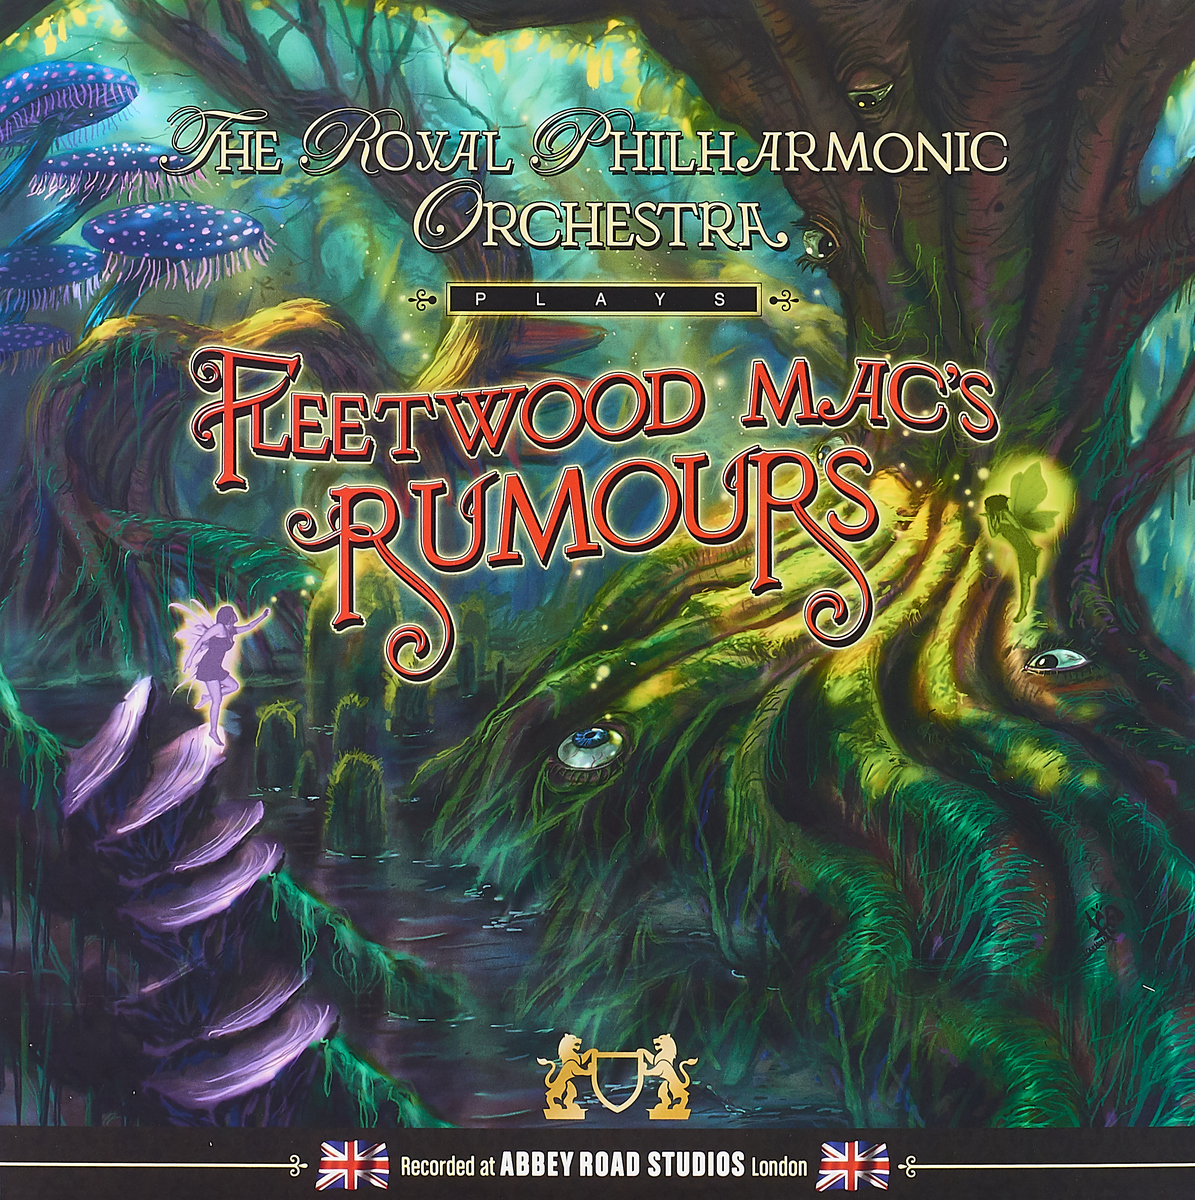 The Royal Philharmonic Orchestra The Royal Philharmonic Orchestra. Plays Fleetwood Mac's Rumours (LP) игорь стравинский igor stravinsky czech philharmonic orchestra conductor karel ancerl le sacre du printemps the rite of spring lp